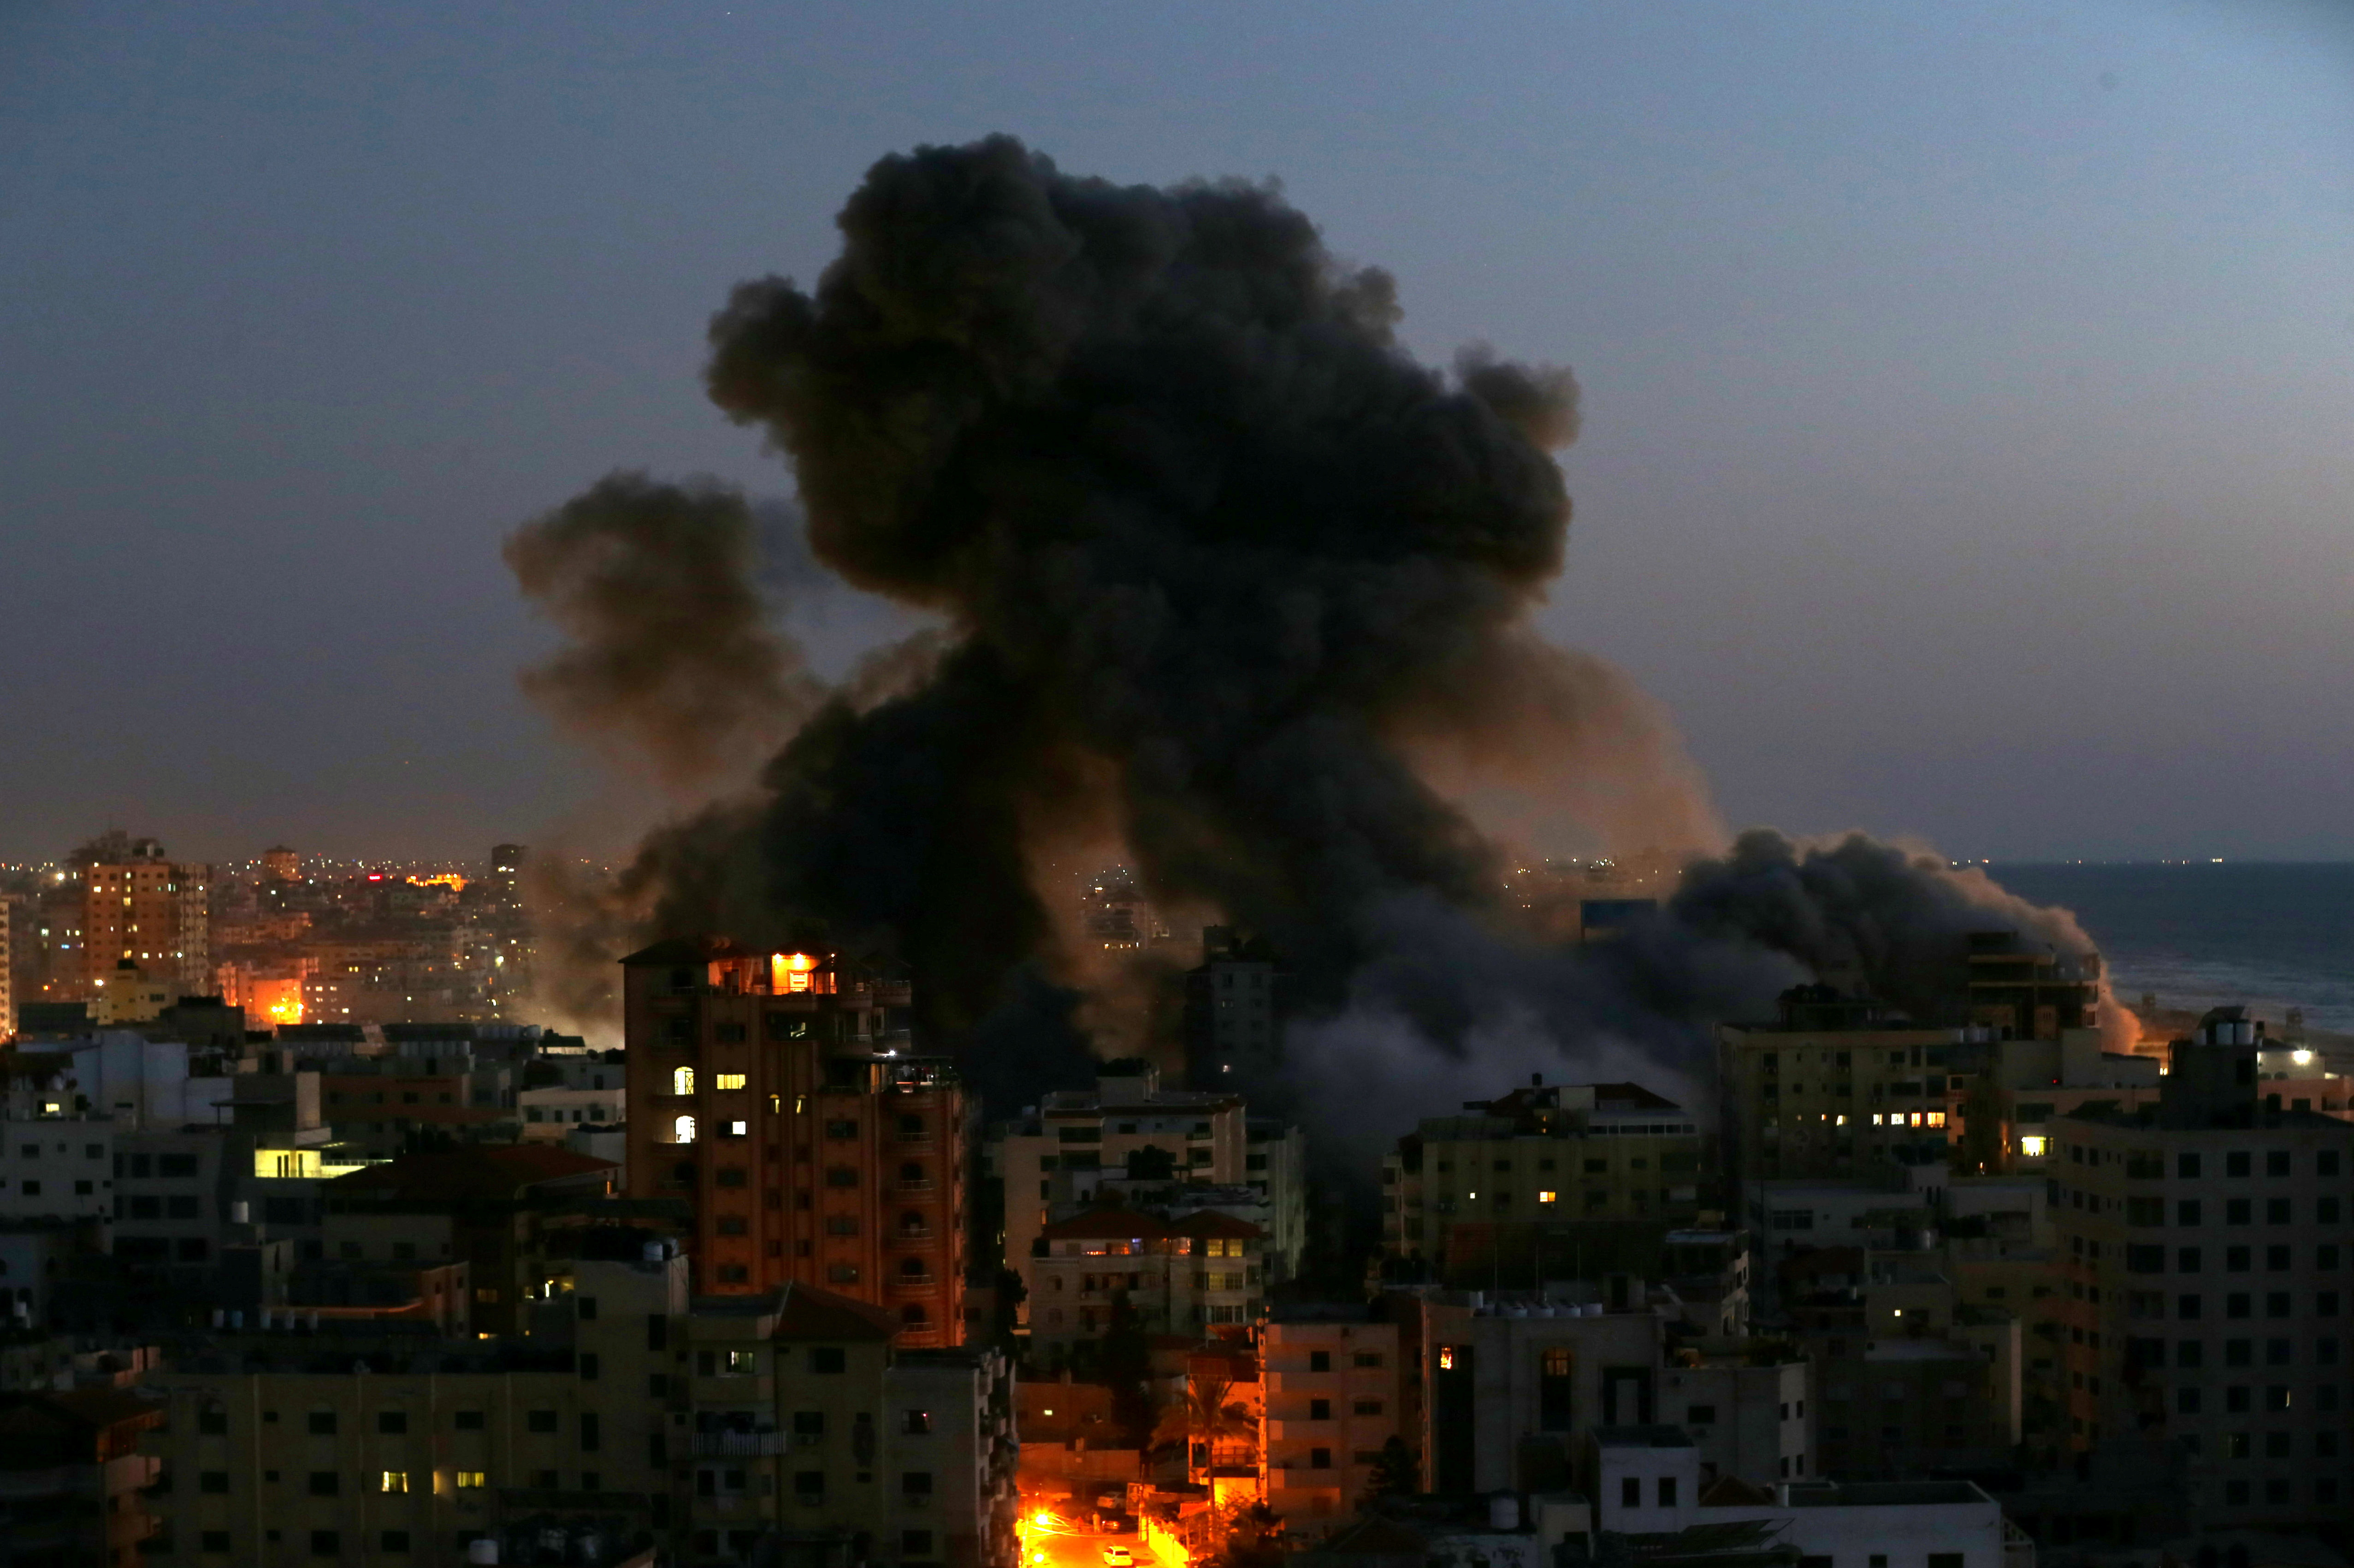 Smoke rises from a building after it was destroyed by Israeli air strikes amid a flare-up of Israeli-Palestinian violence, in Gaza May 11, 2021. REUTERS/Ibraheem Abu Mustafa